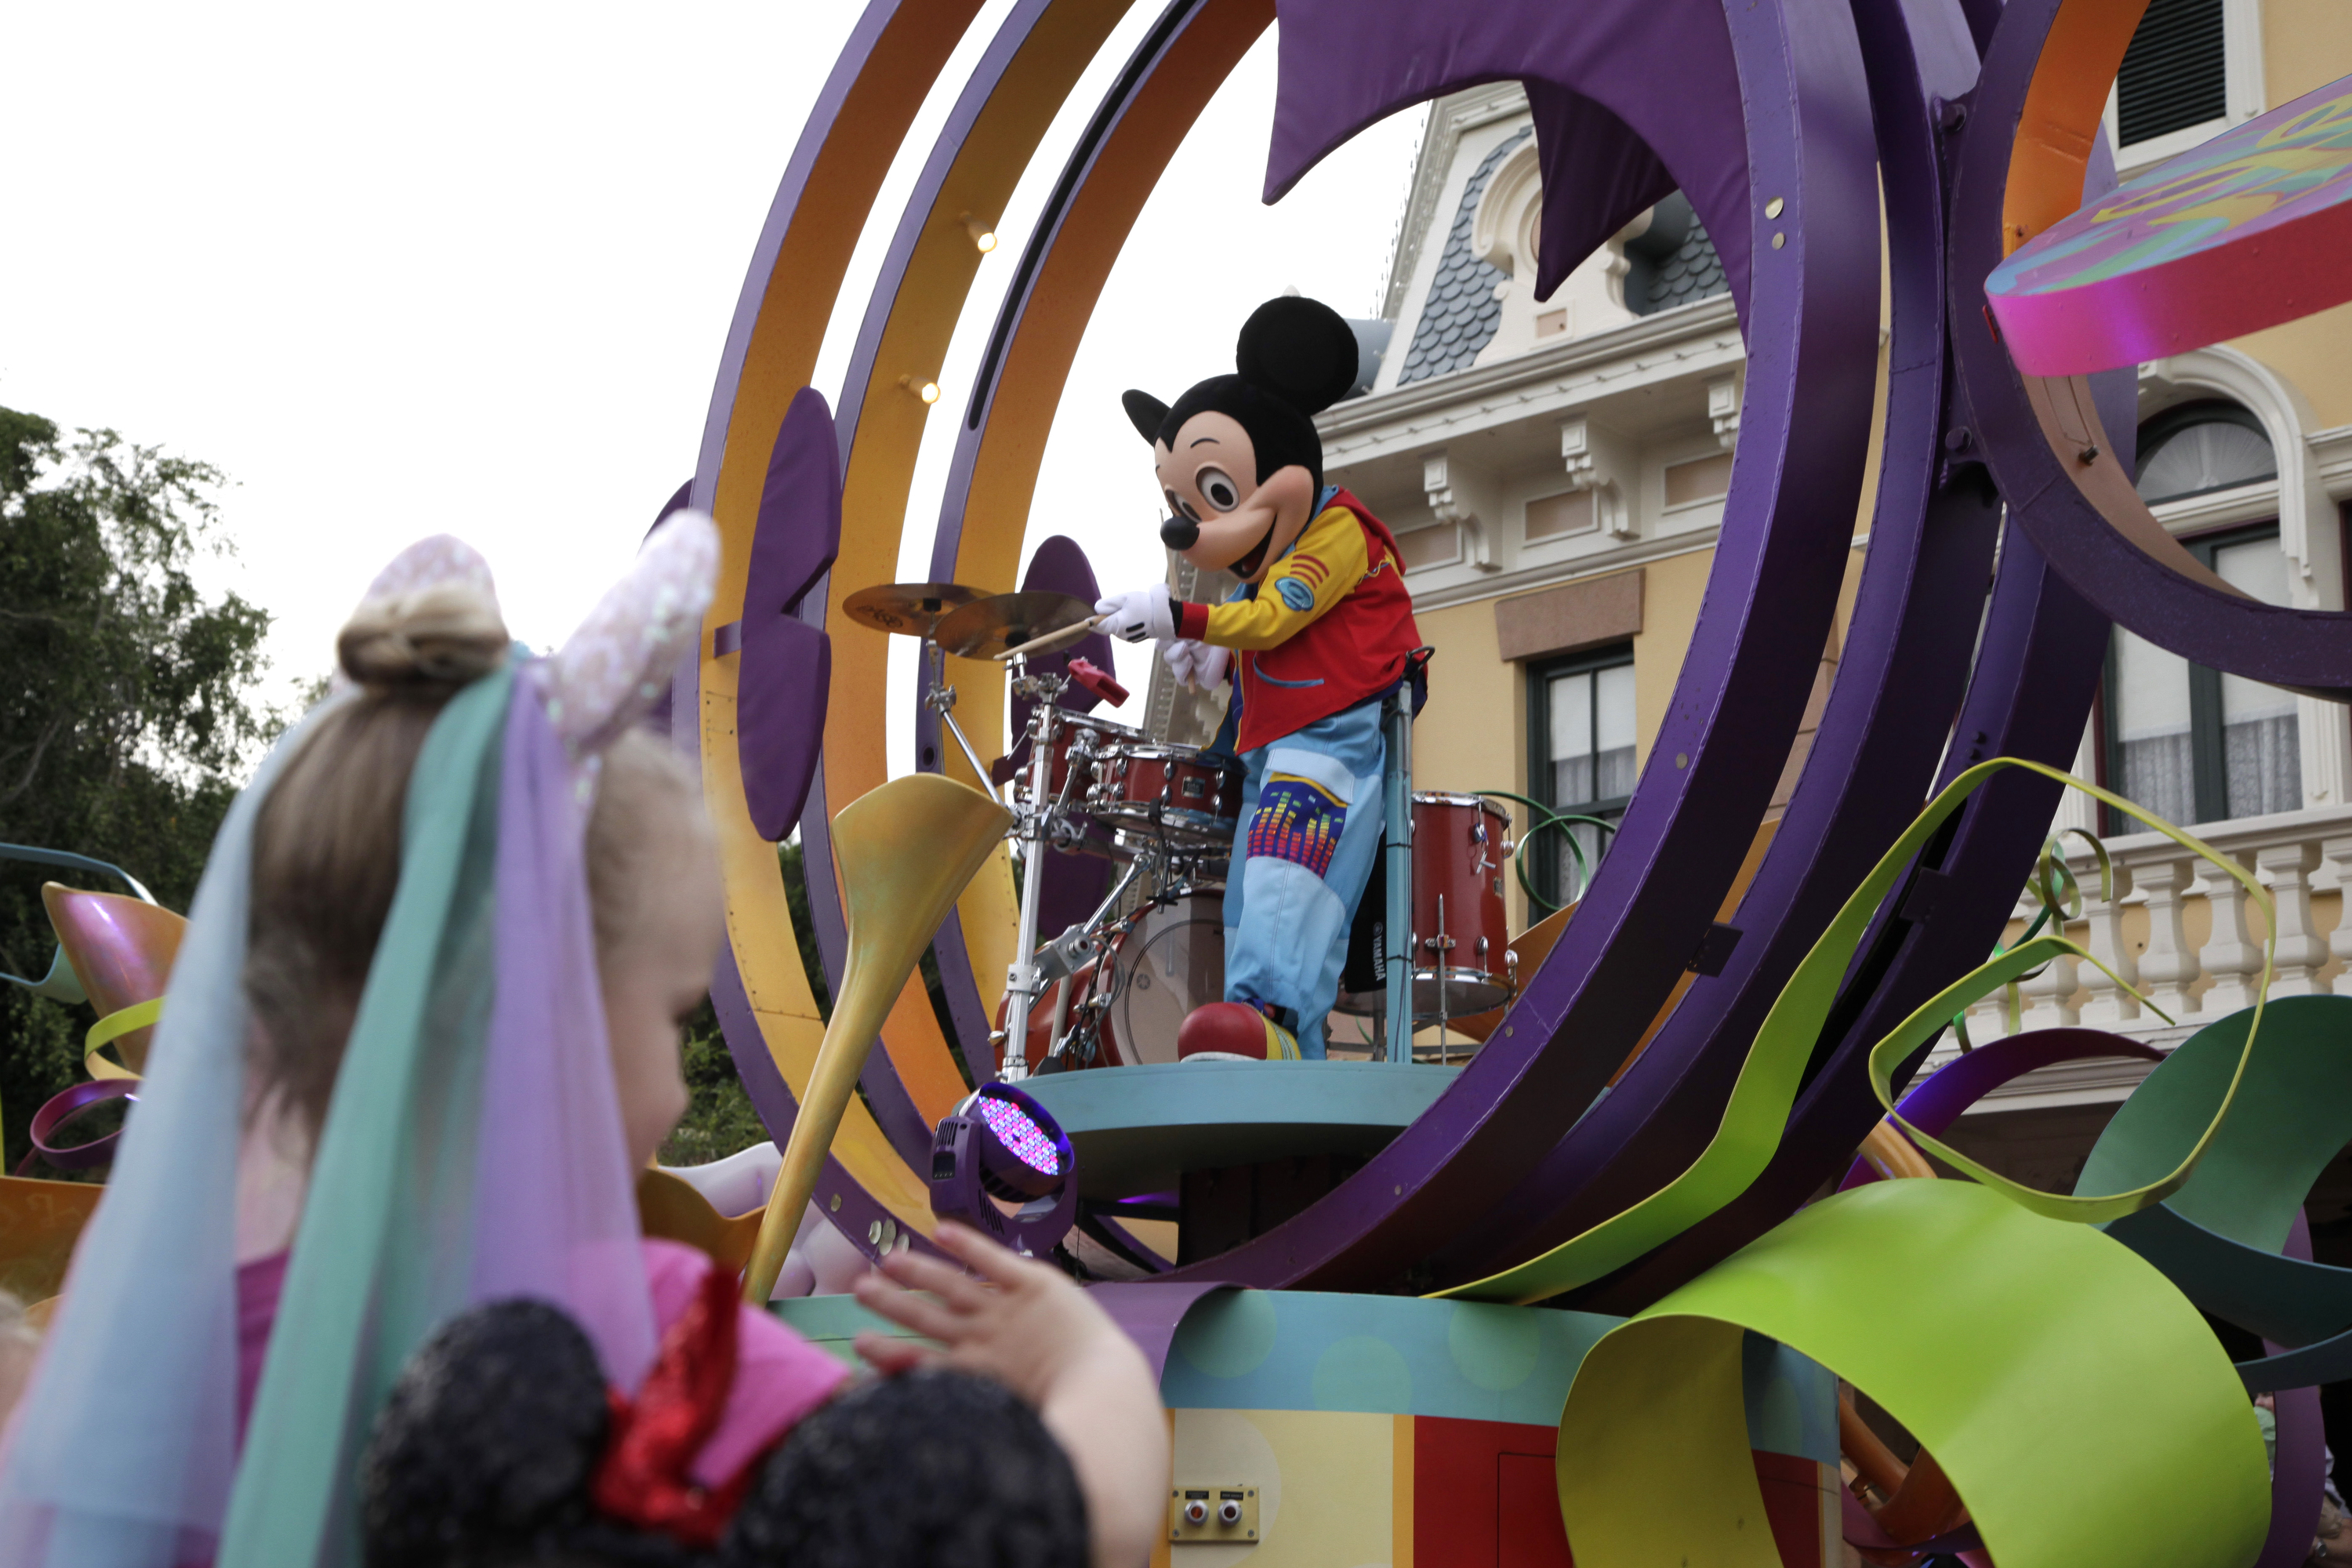 Mickey Mouse performing during a parade at Disneyland in Anaheim, Calif., Jan. 22, 2015.